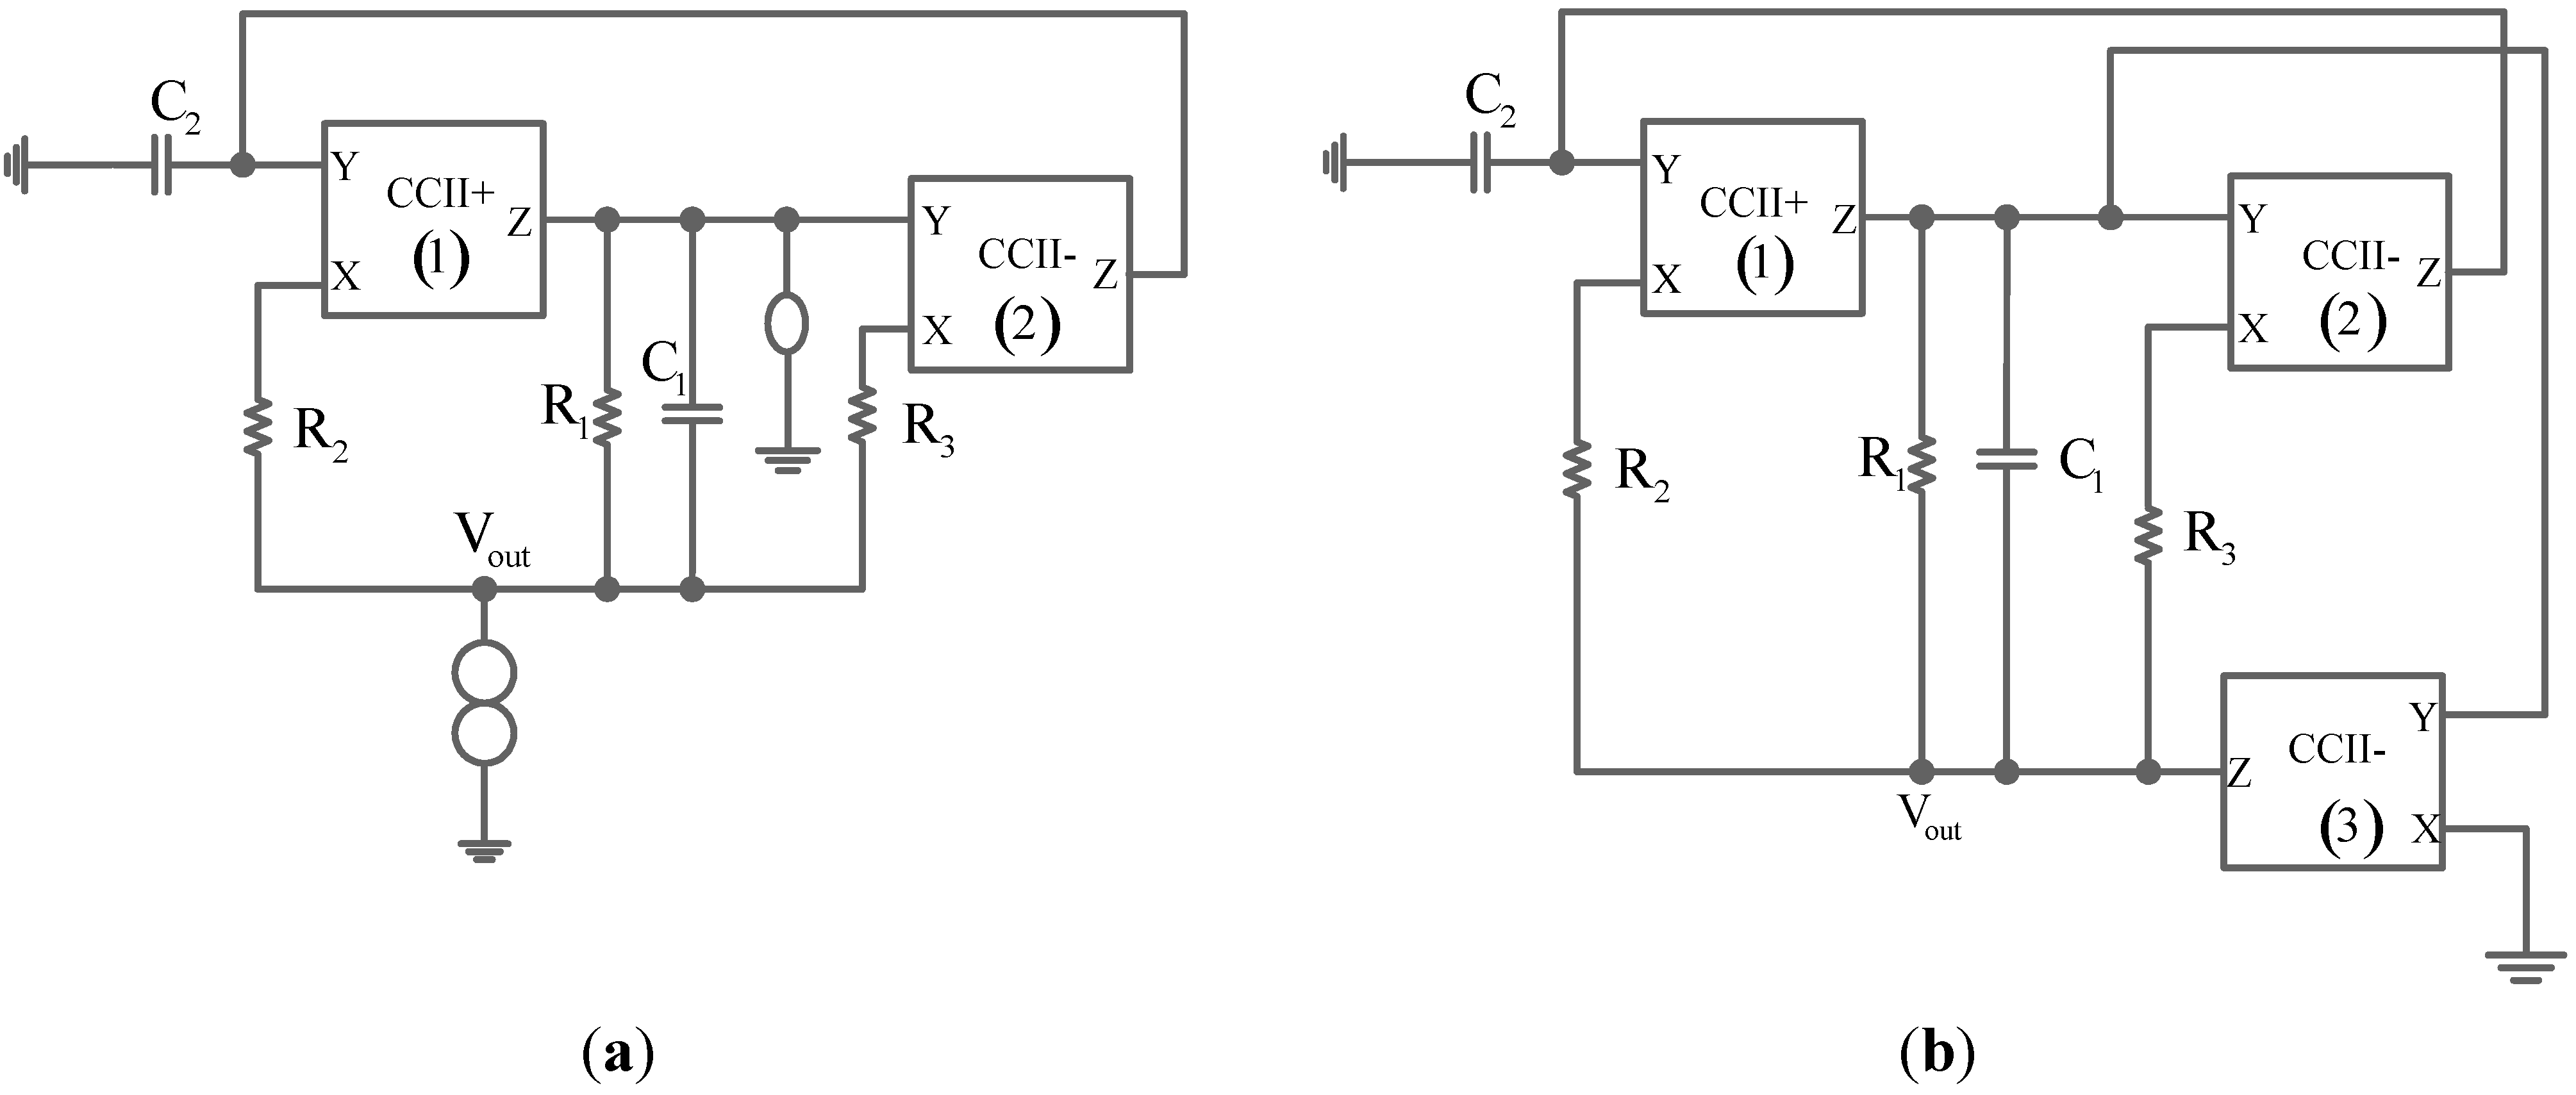 Applied Sciences Free Full Text Derivation Of Oscillators From Series And Parallel Circuits Must Be Selectively To Applsci 04 00482 G005 1024